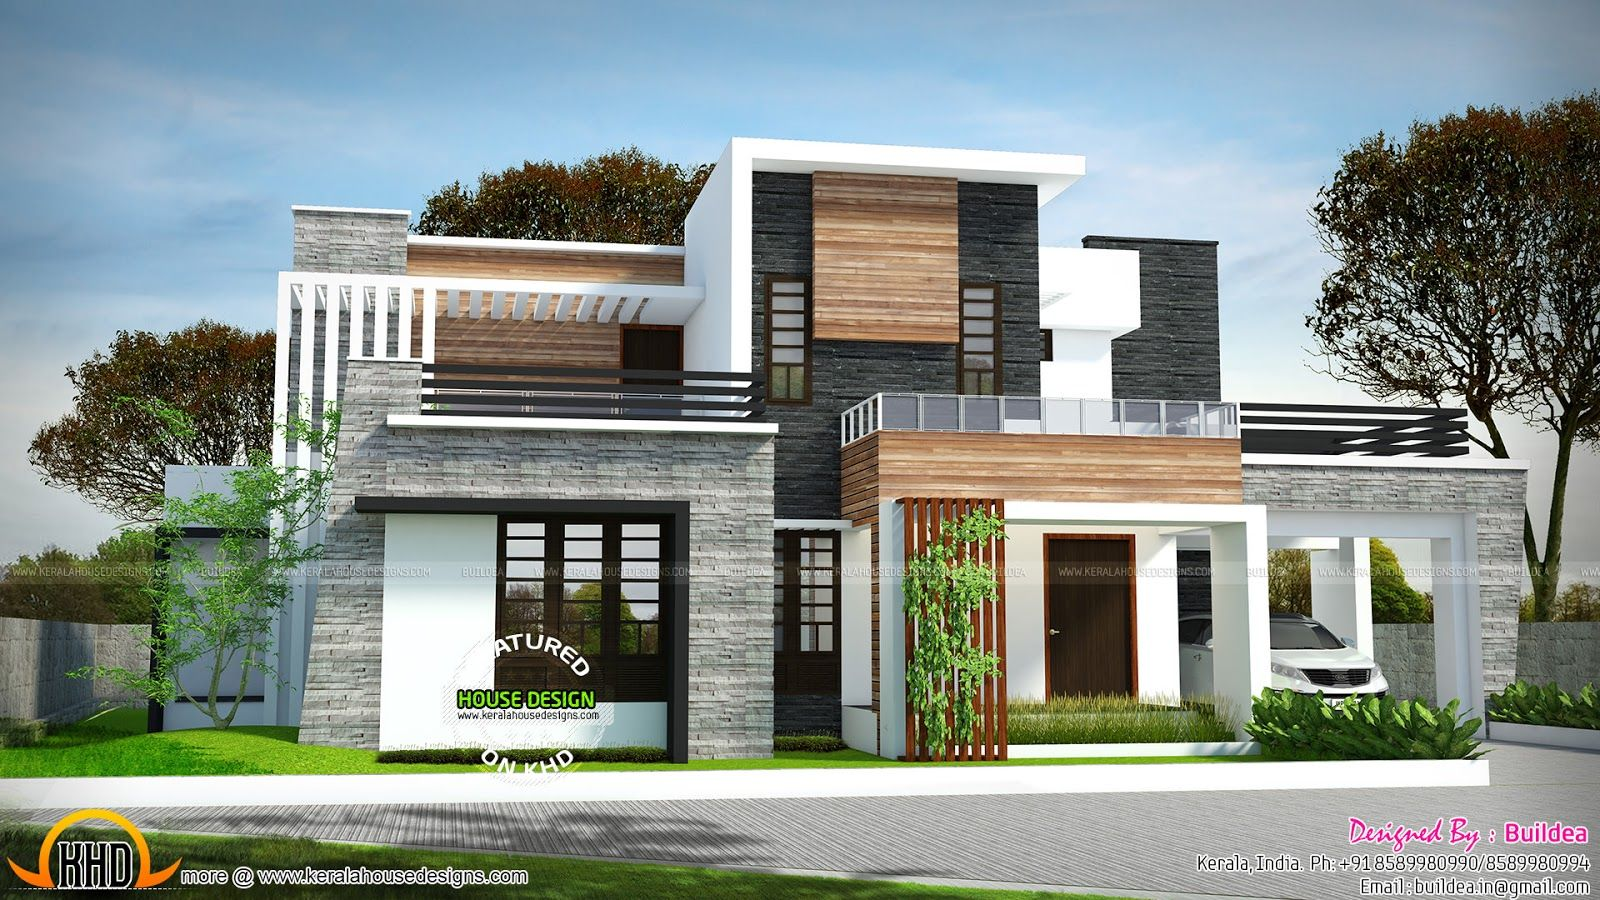 2729 Sq Ft 4 Bedroom Flat Roof Modern House Kerala House Design Rooftop Design House Design Trends